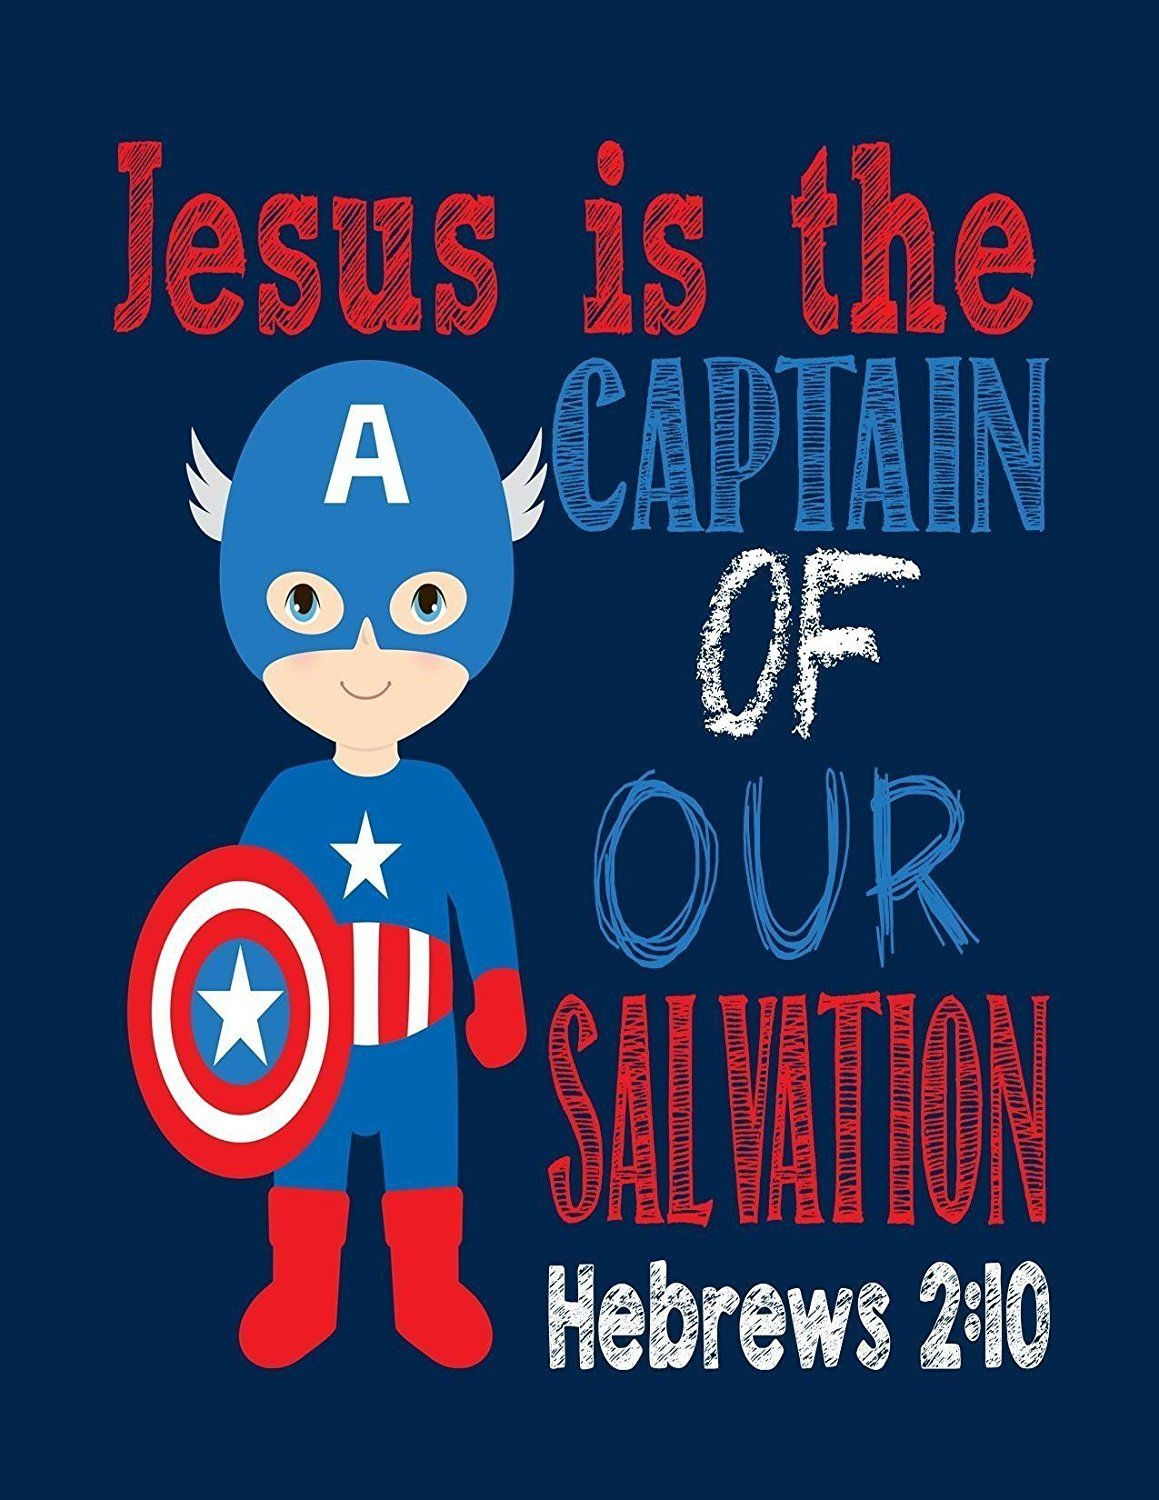 Captain America Christian Superhero Wall Art Print   Jesus Is The Captain  Of Our Salvation Hebrews 2:10 Bible Verse